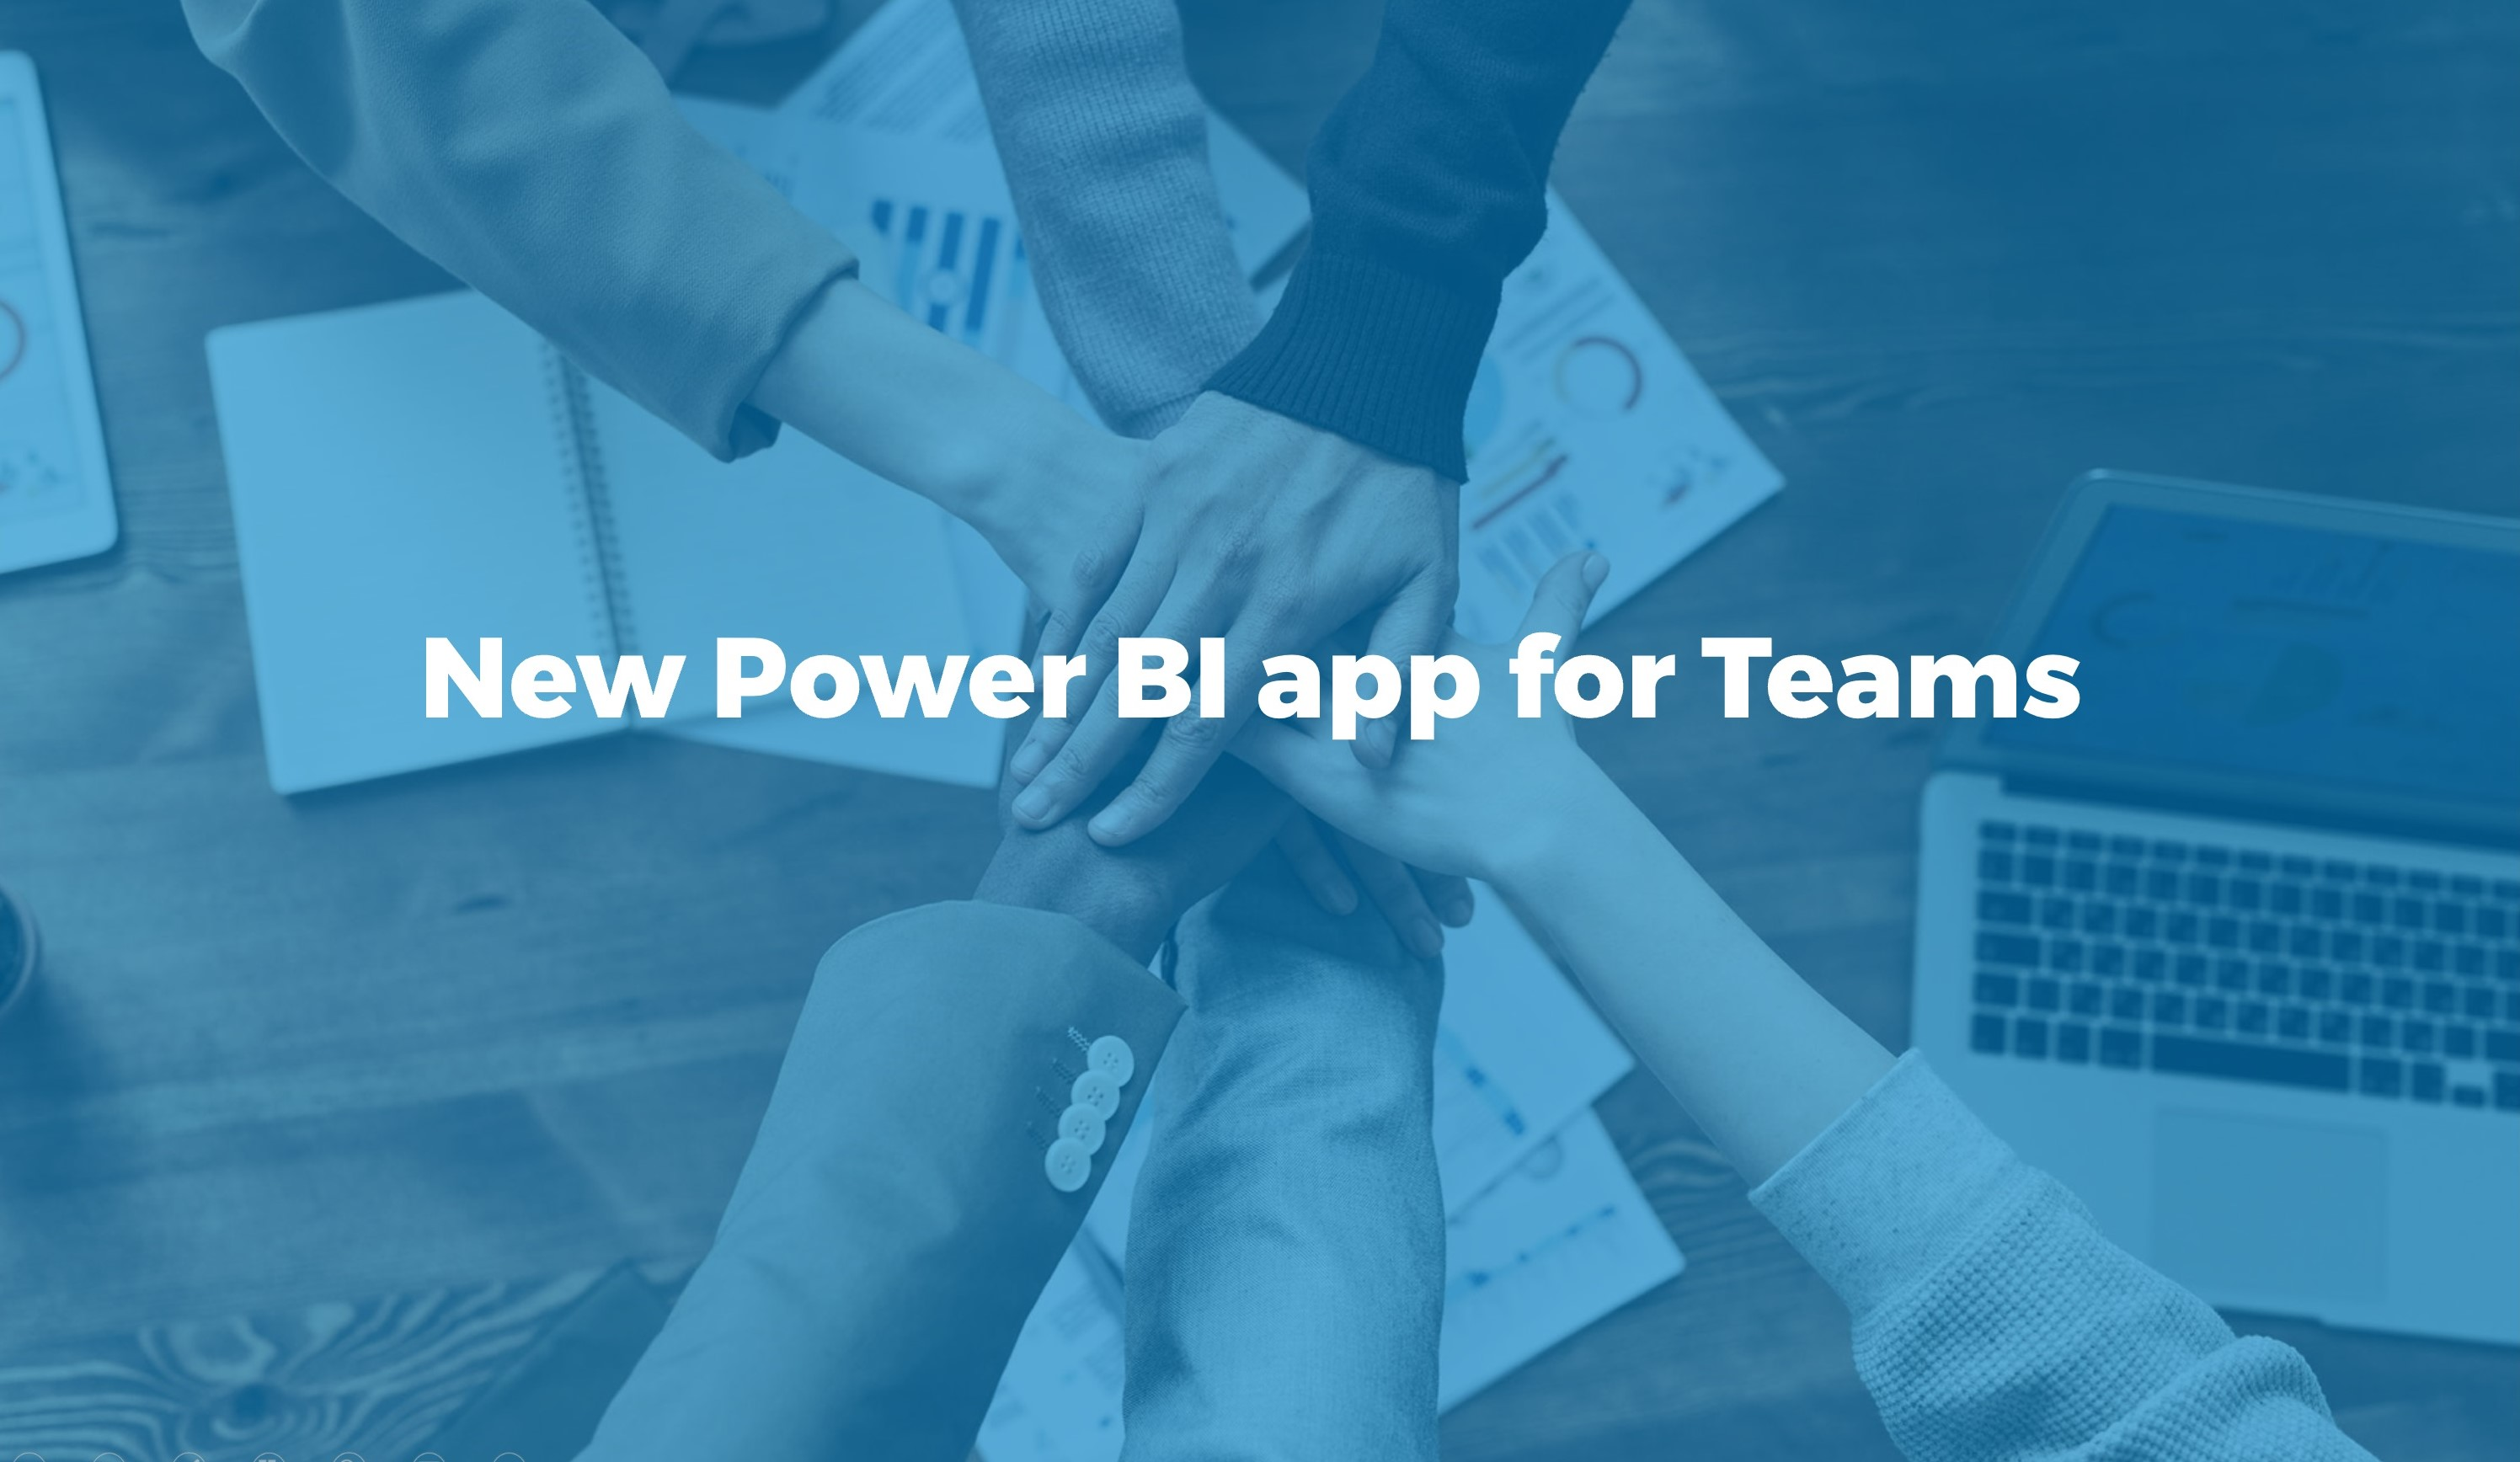 Microsoft launches a new Power BI app for Teams